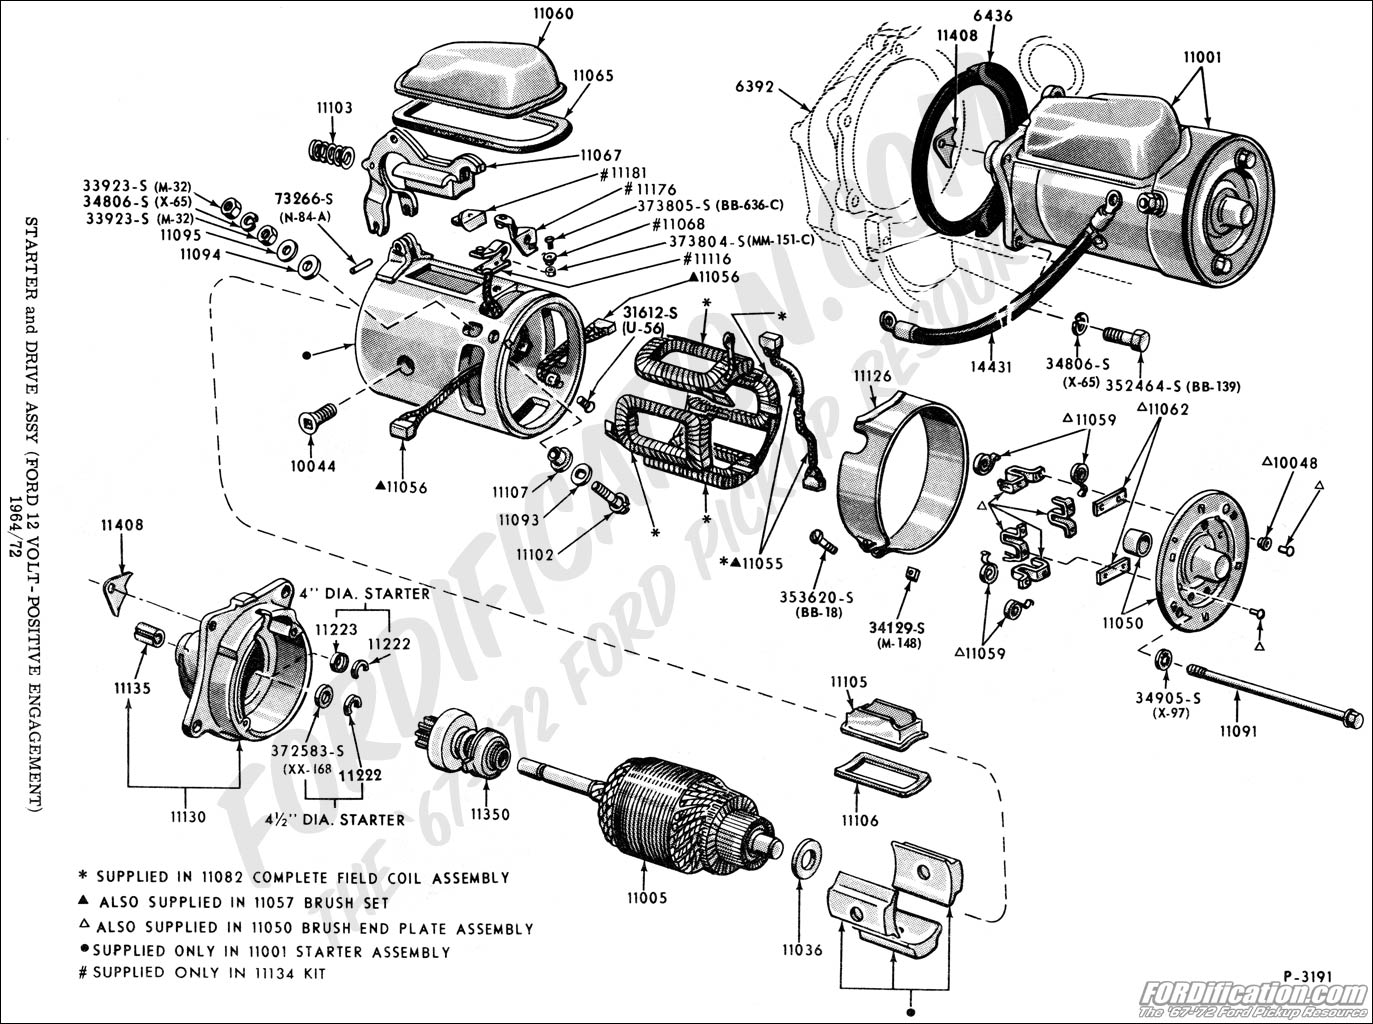 Ford Truck Technical Drawings and Schematics - Section I ... on 2001 ranger wiring diagram, 2001 explorer wiring diagram, 2001 e450 wiring diagram, 2001 focus wiring diagram, 2001 f150 wiring diagram, 2001 windstar wiring diagram, 2001 taurus wiring diagram, 2001 c320 wiring diagram, 2001 f550 wiring diagram, 2001 expedition wiring diagram, 2001 f350 wiring diagram, 2001 f250 wiring diagram,